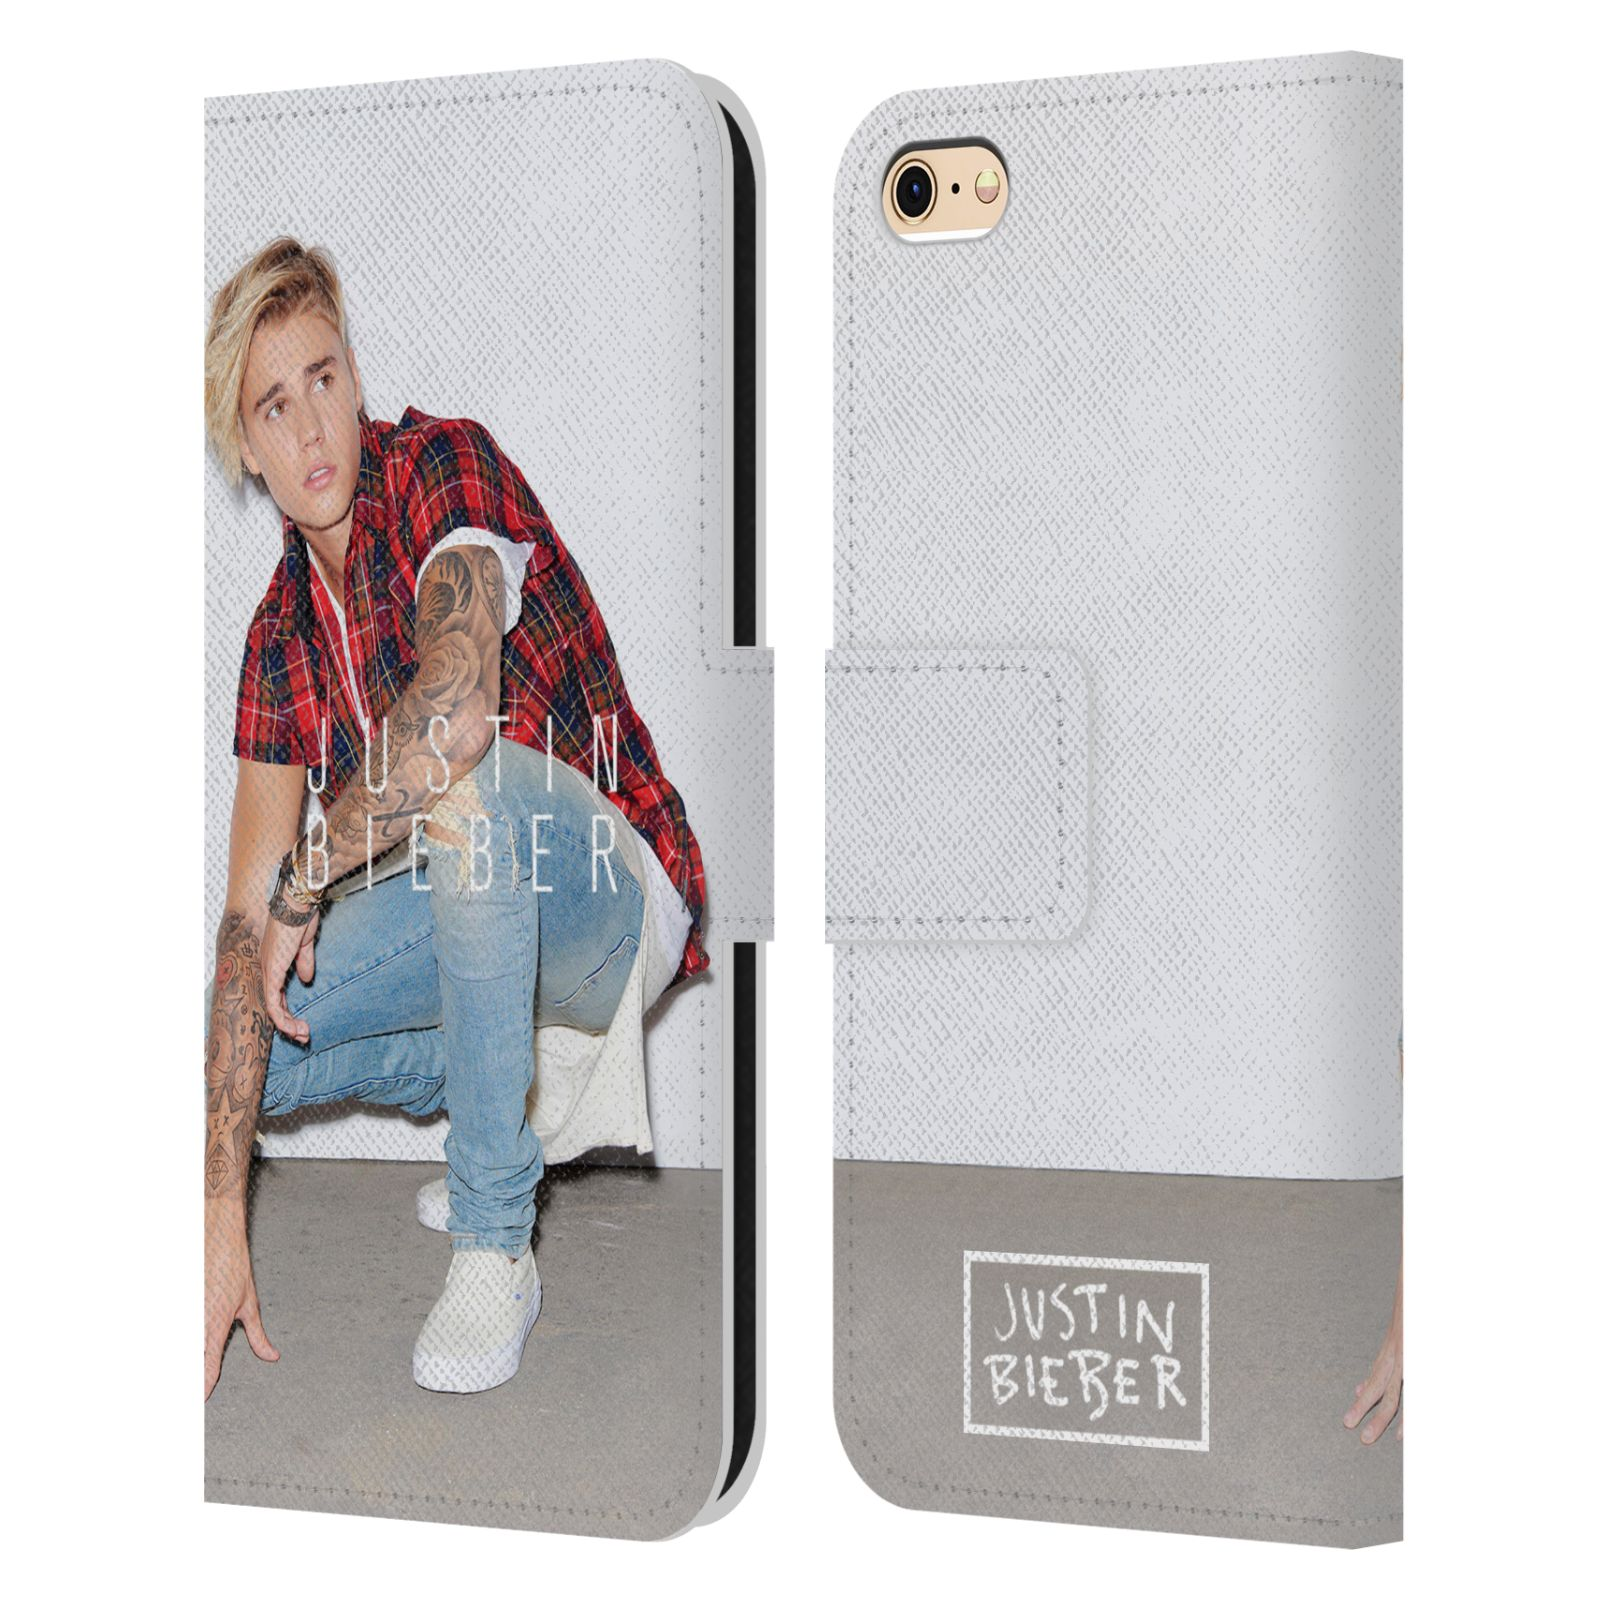 OFFICIAL-JUSTIN-BIEBER-KEY-ART-LEATHER-BOOK-WALLET-CASE-FOR-APPLE-iPHONE-PHONES